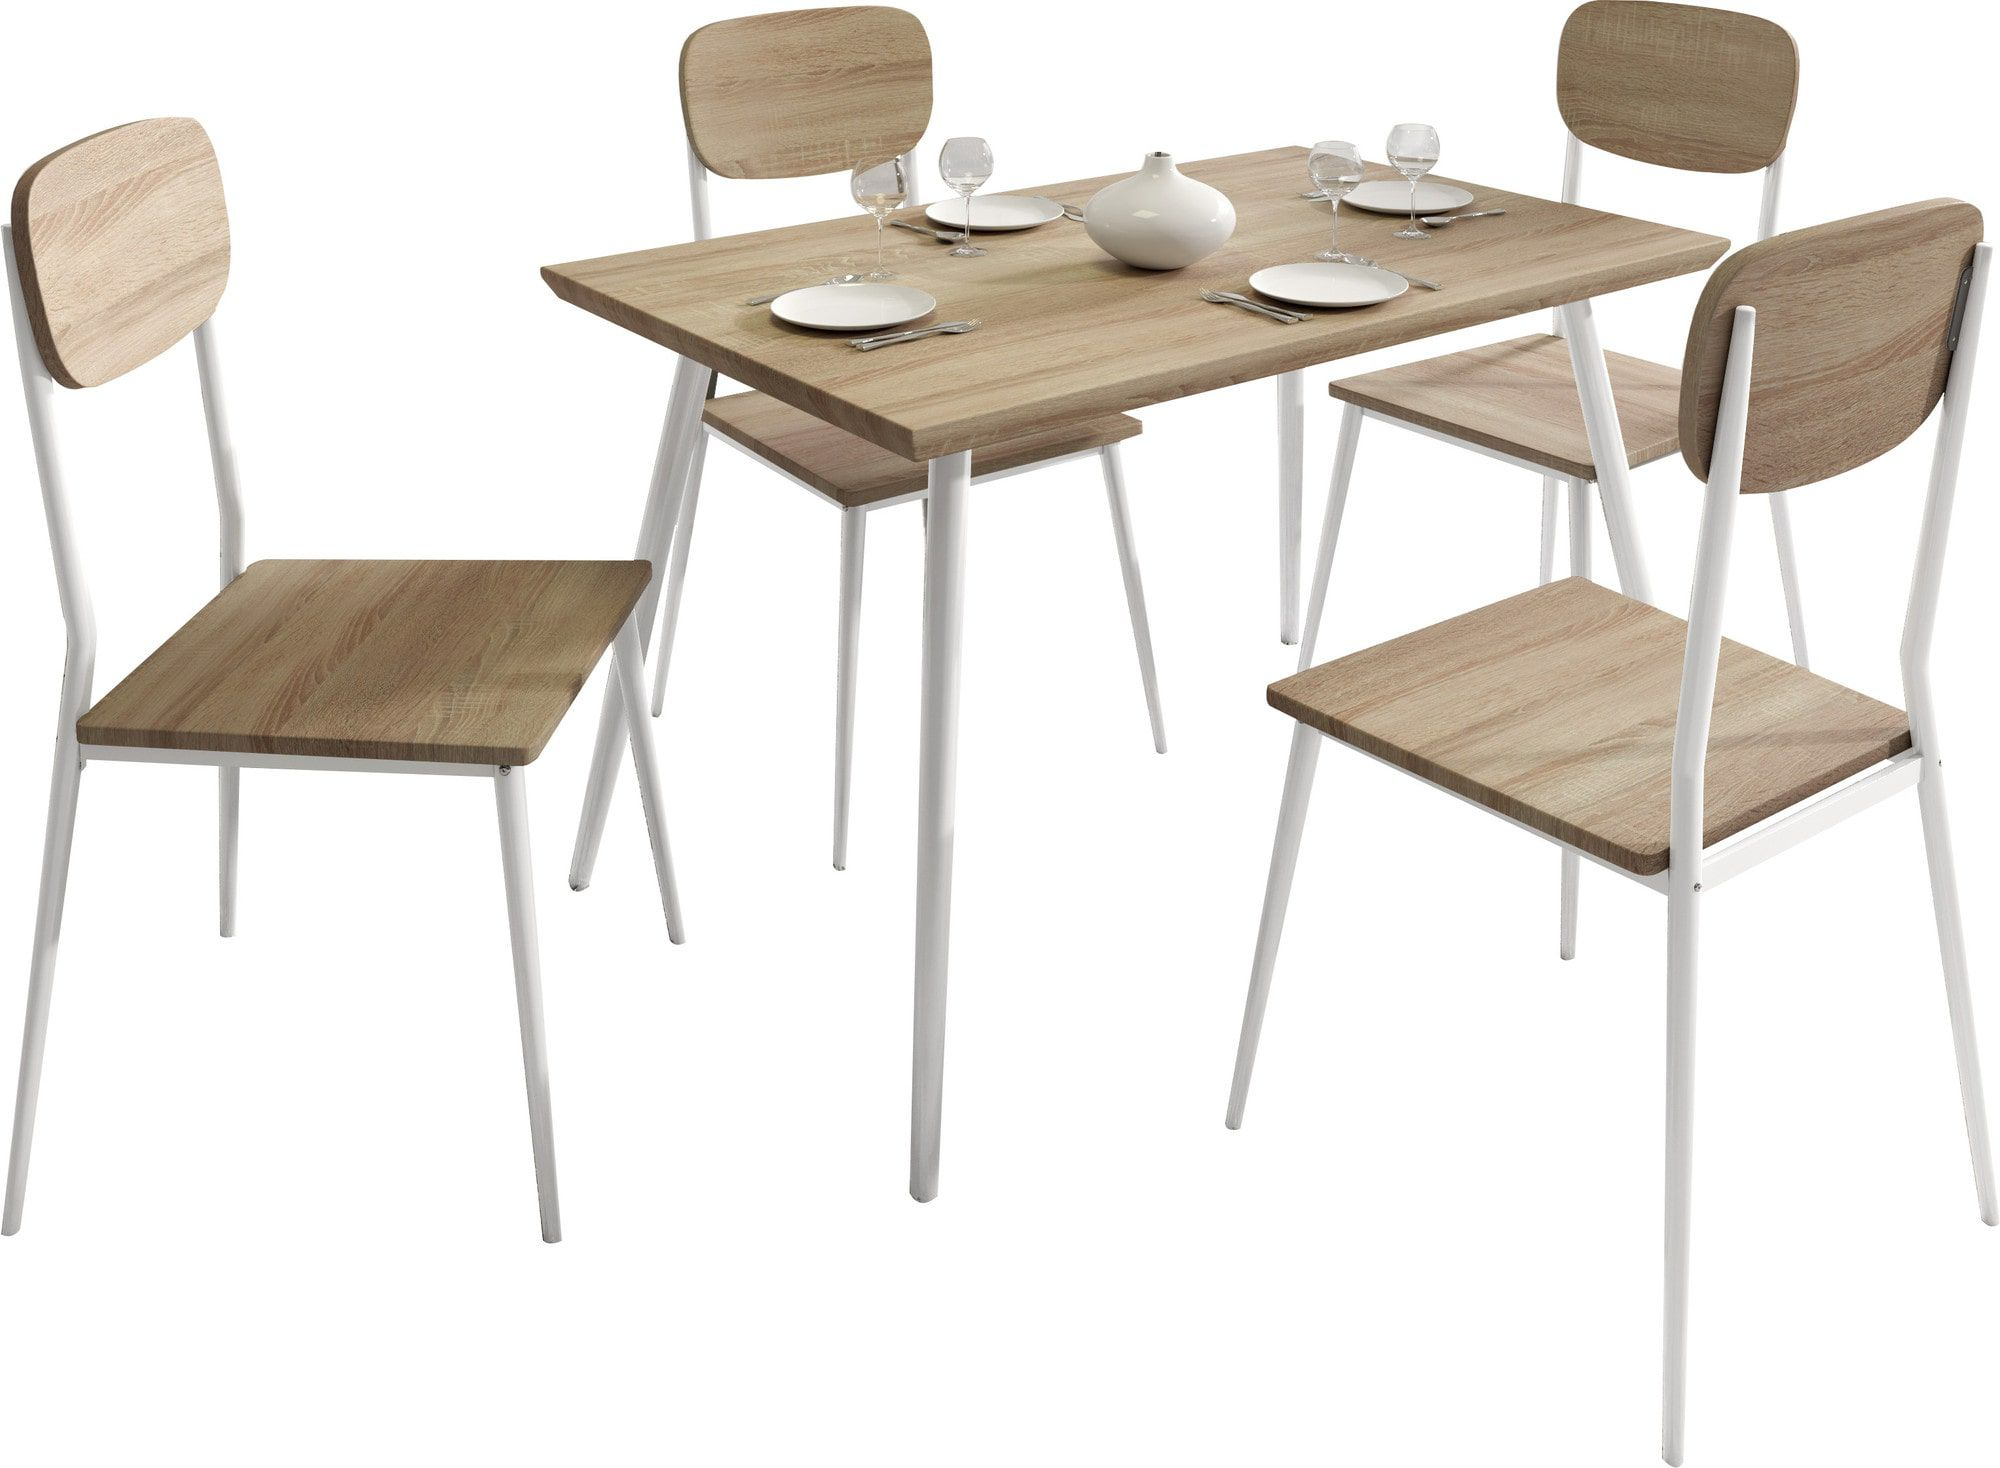 Comment assortir l ensemble table et chaise de sa salle for Ensemble table et chaises de salle a manger